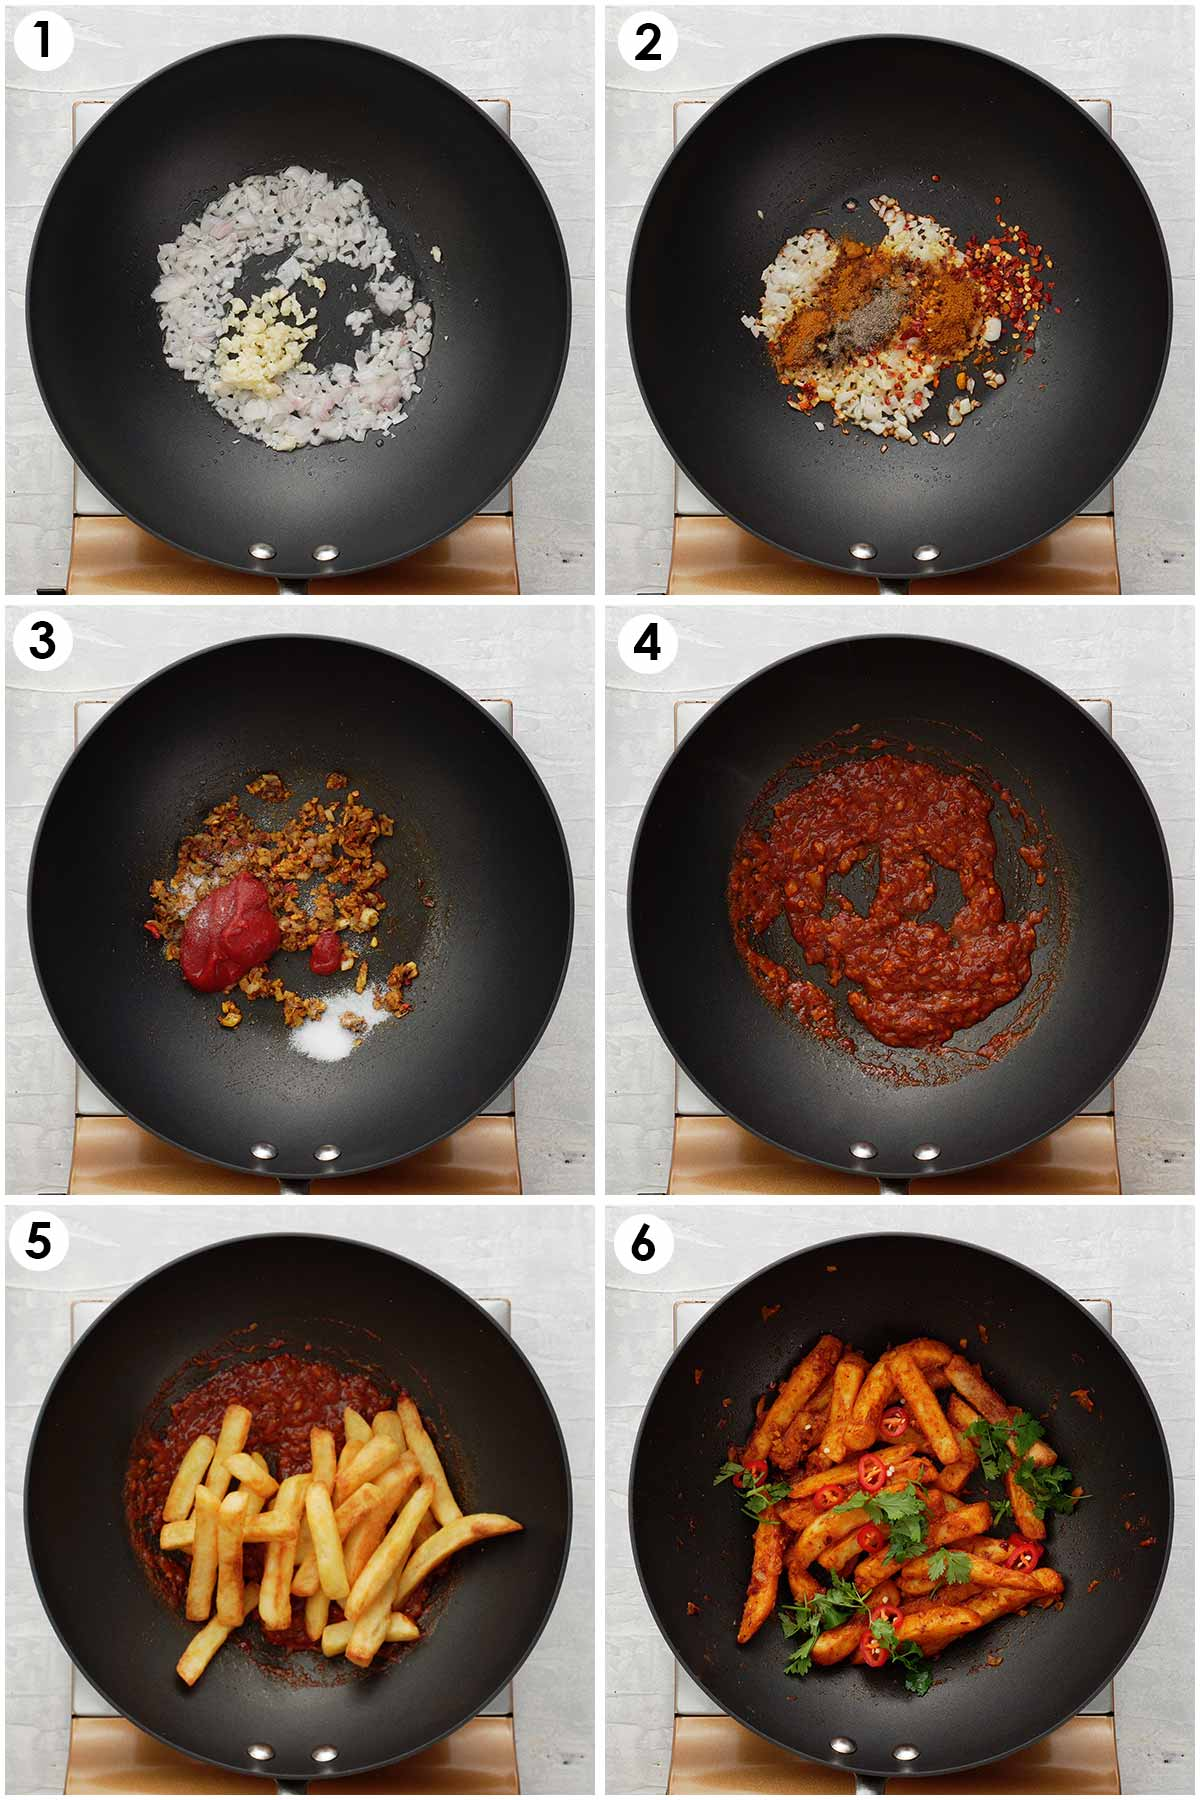 6 image collage showing how to make masala chips.